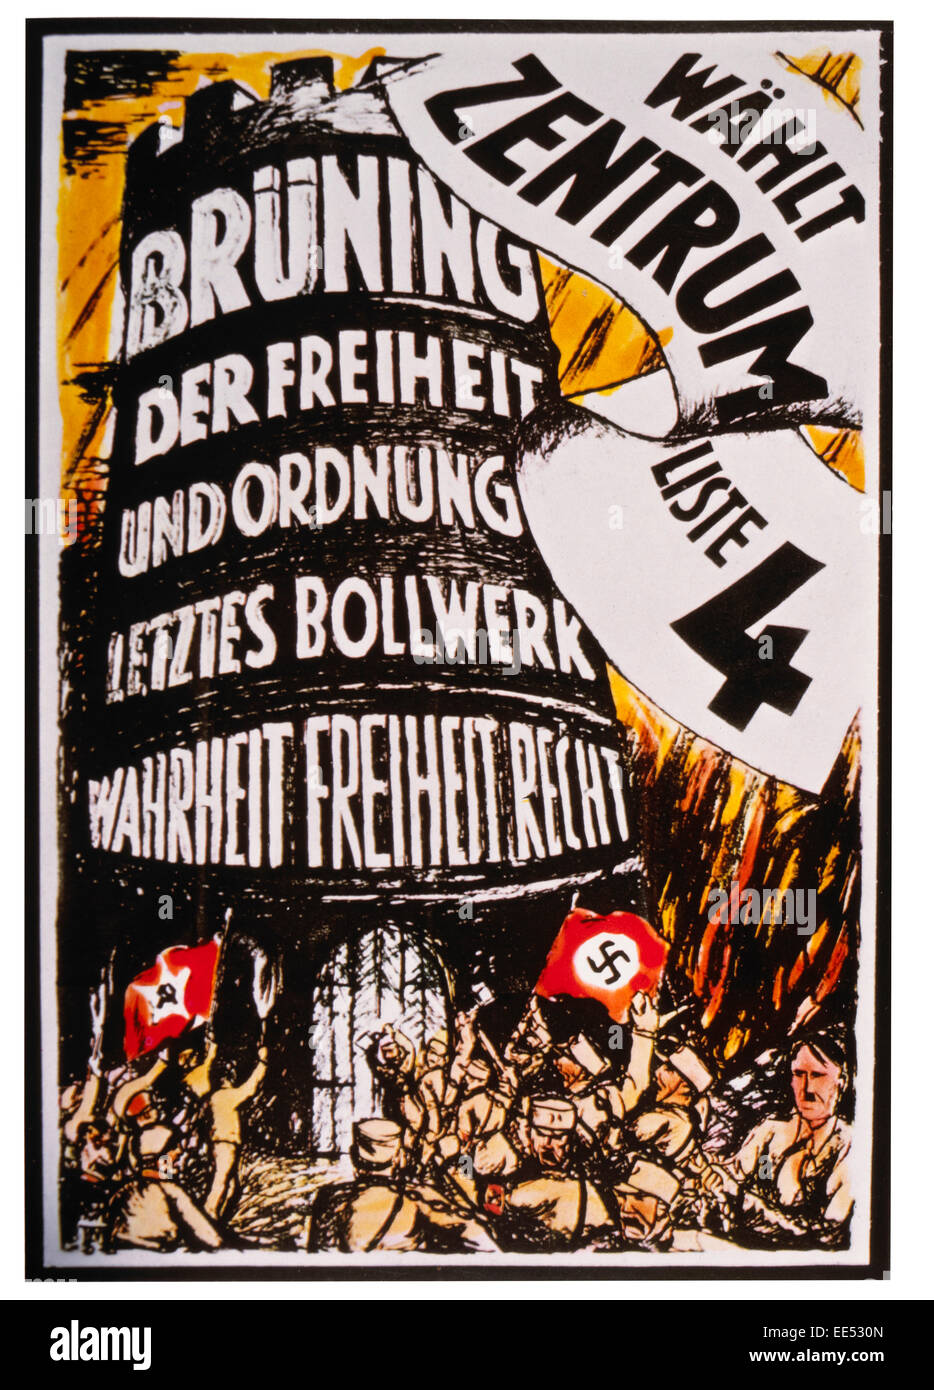 Center Party Political Poster for Reichstag Elections, 'Bruning, Last Bulwark of Freedom and Order, Truth, Freedom, - Stock Image